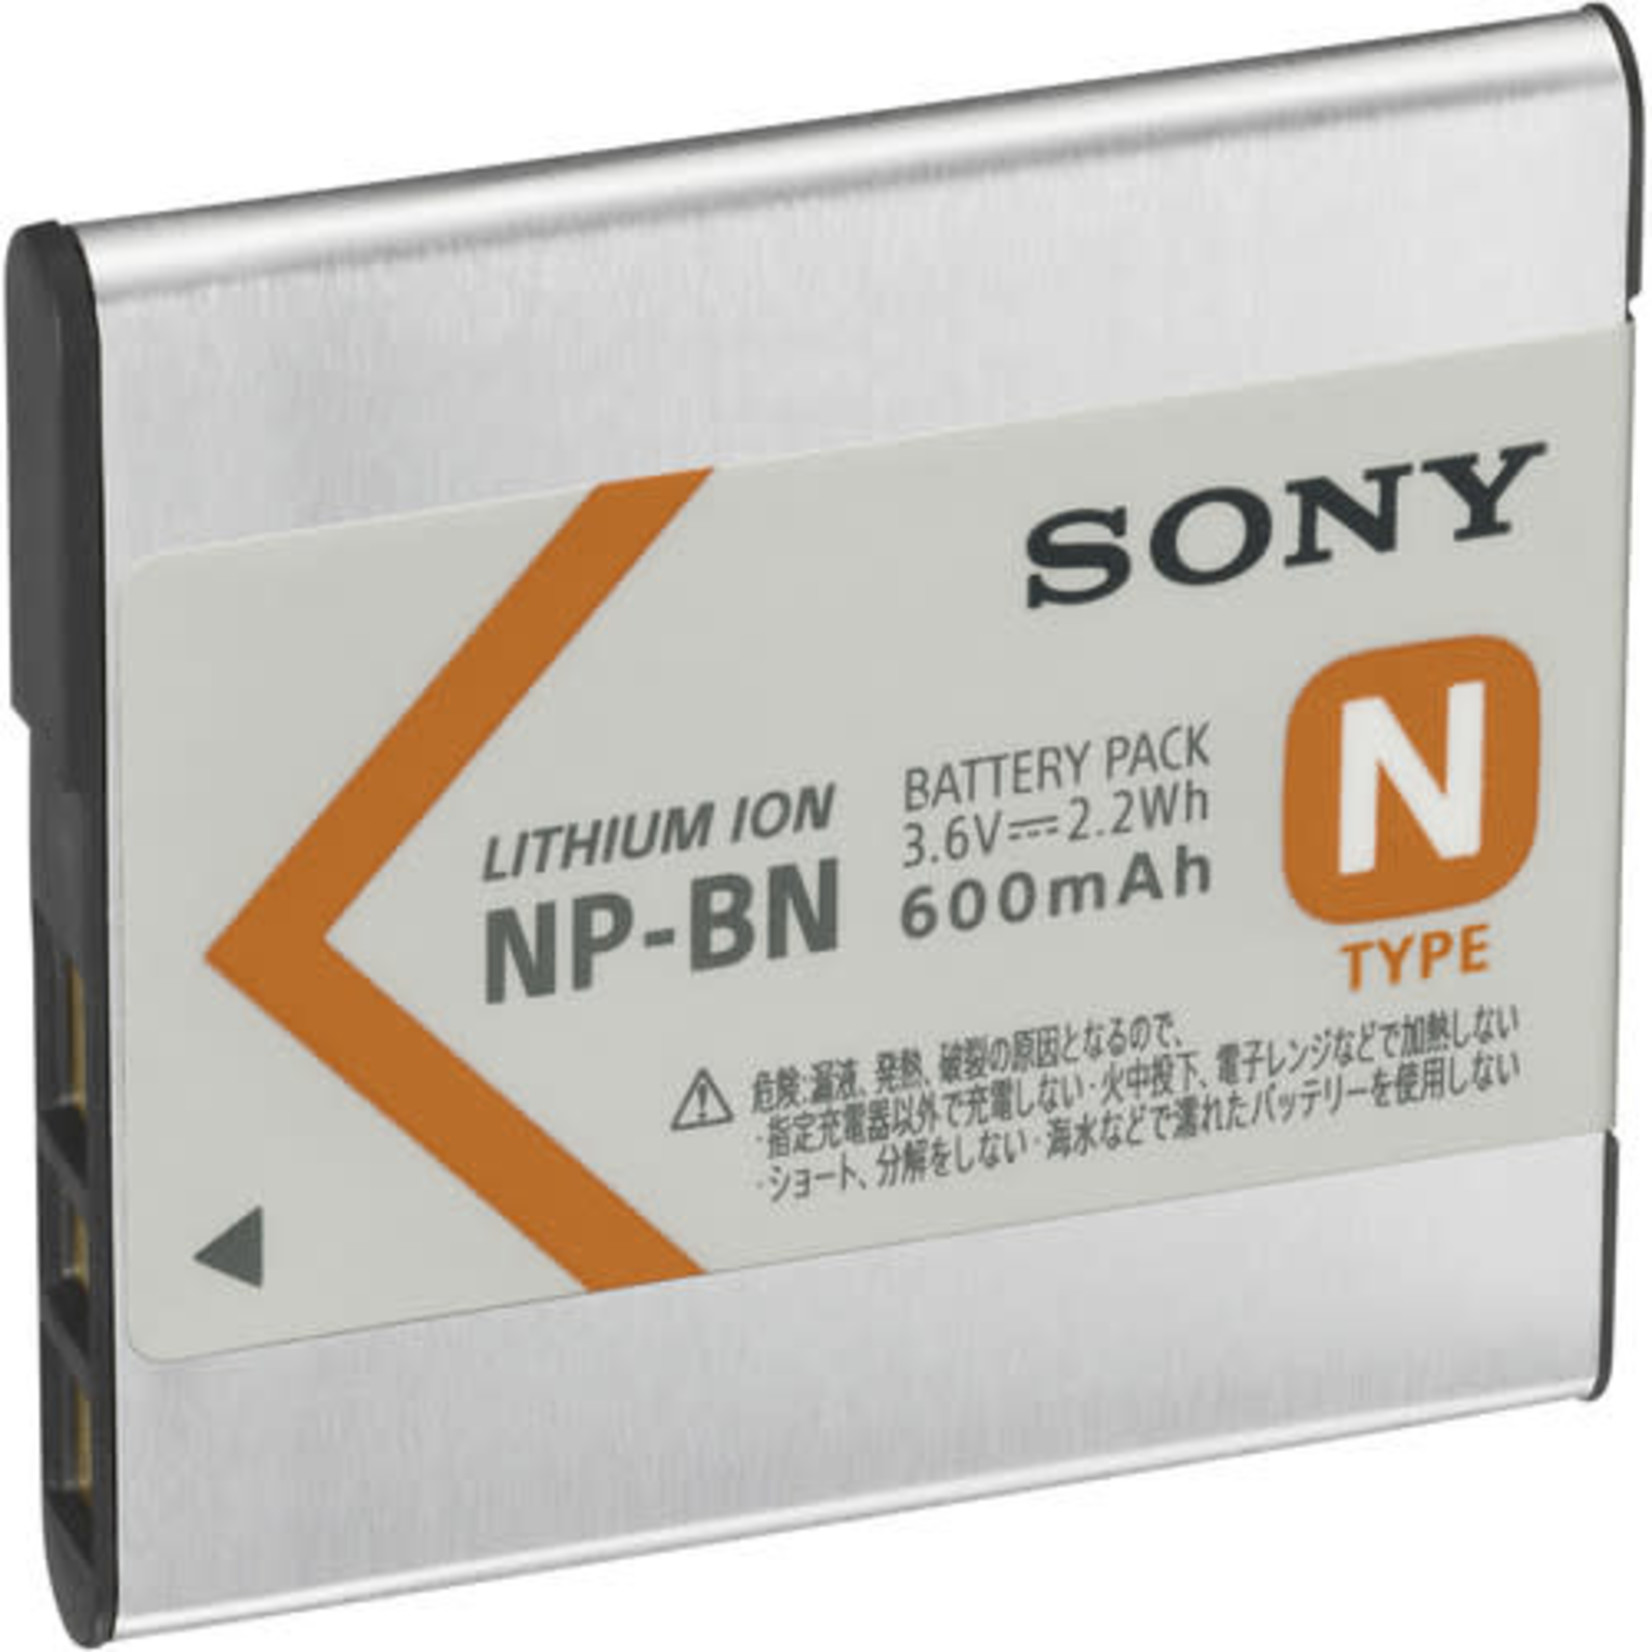 Sony Sony NP-BN N-Series Rechargeable Battery Pack for Select Cameras